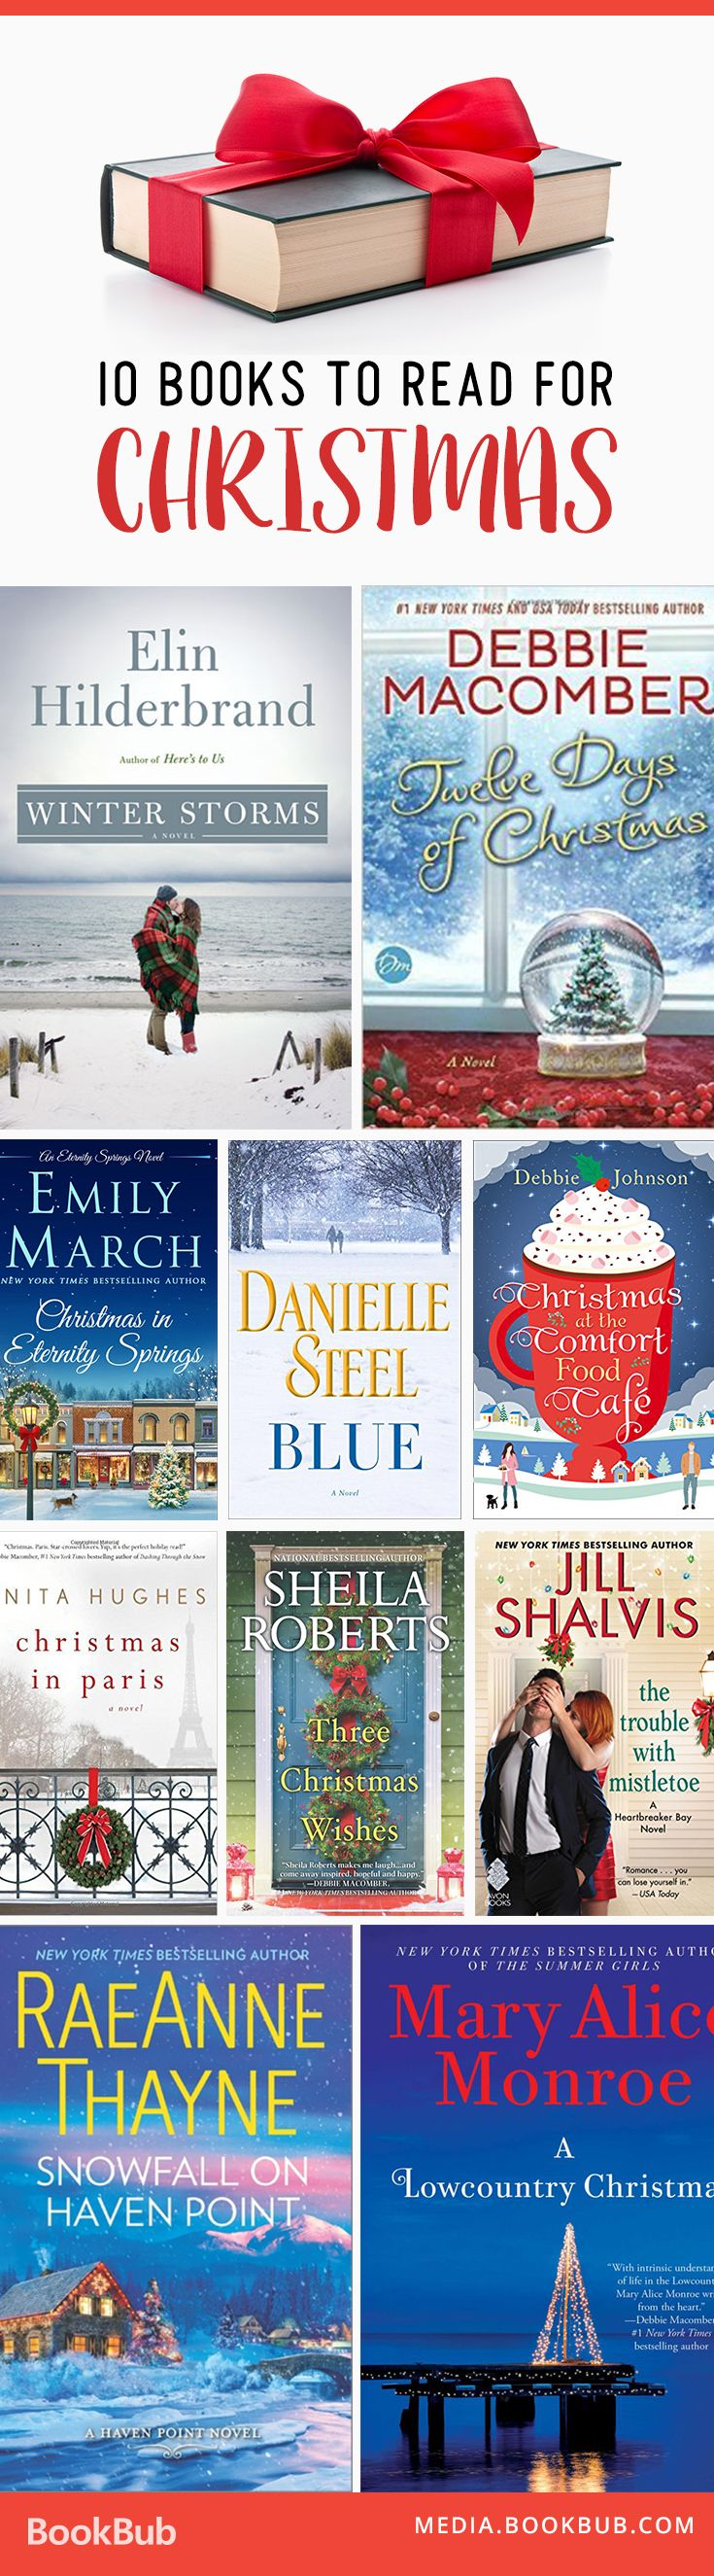 Looking forward to some reading around Christmastime? These book recommendations for the holidays will do the trick!